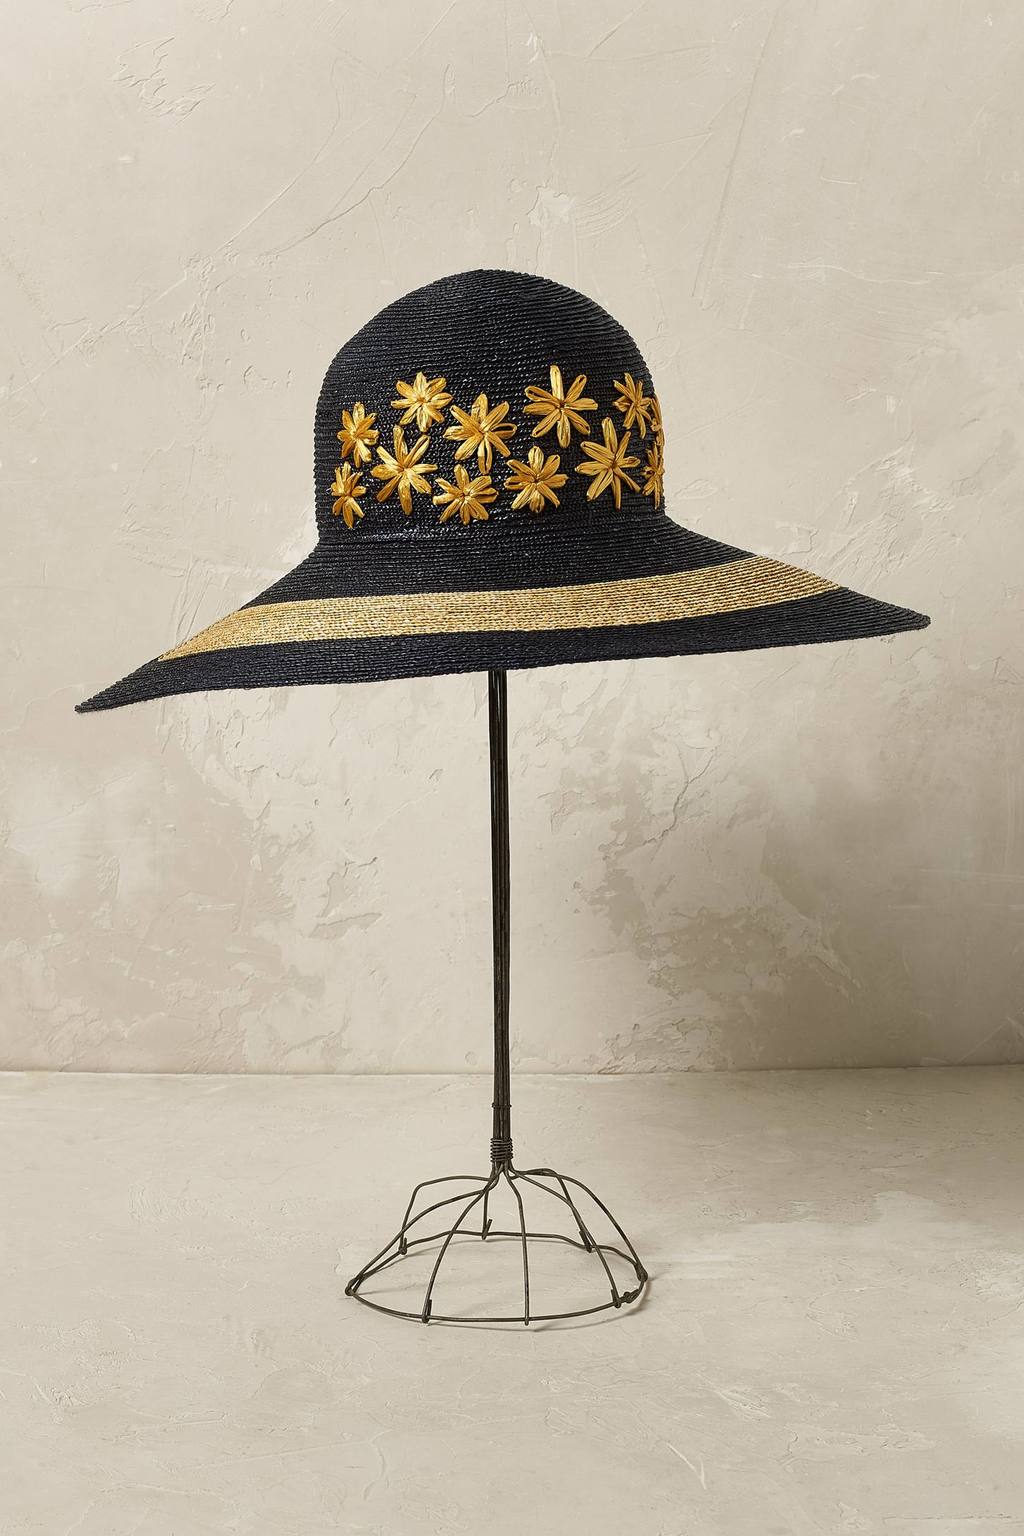 Marguerite Floral Floppy Hat - predominant colour: navy; secondary colour: camel; occasions: casual, holiday; type of pattern: heavy; style: wide brimmed; size: large; material: macrame/raffia/straw; pattern: patterned/print; season: s/s 2016; wardrobe: holiday